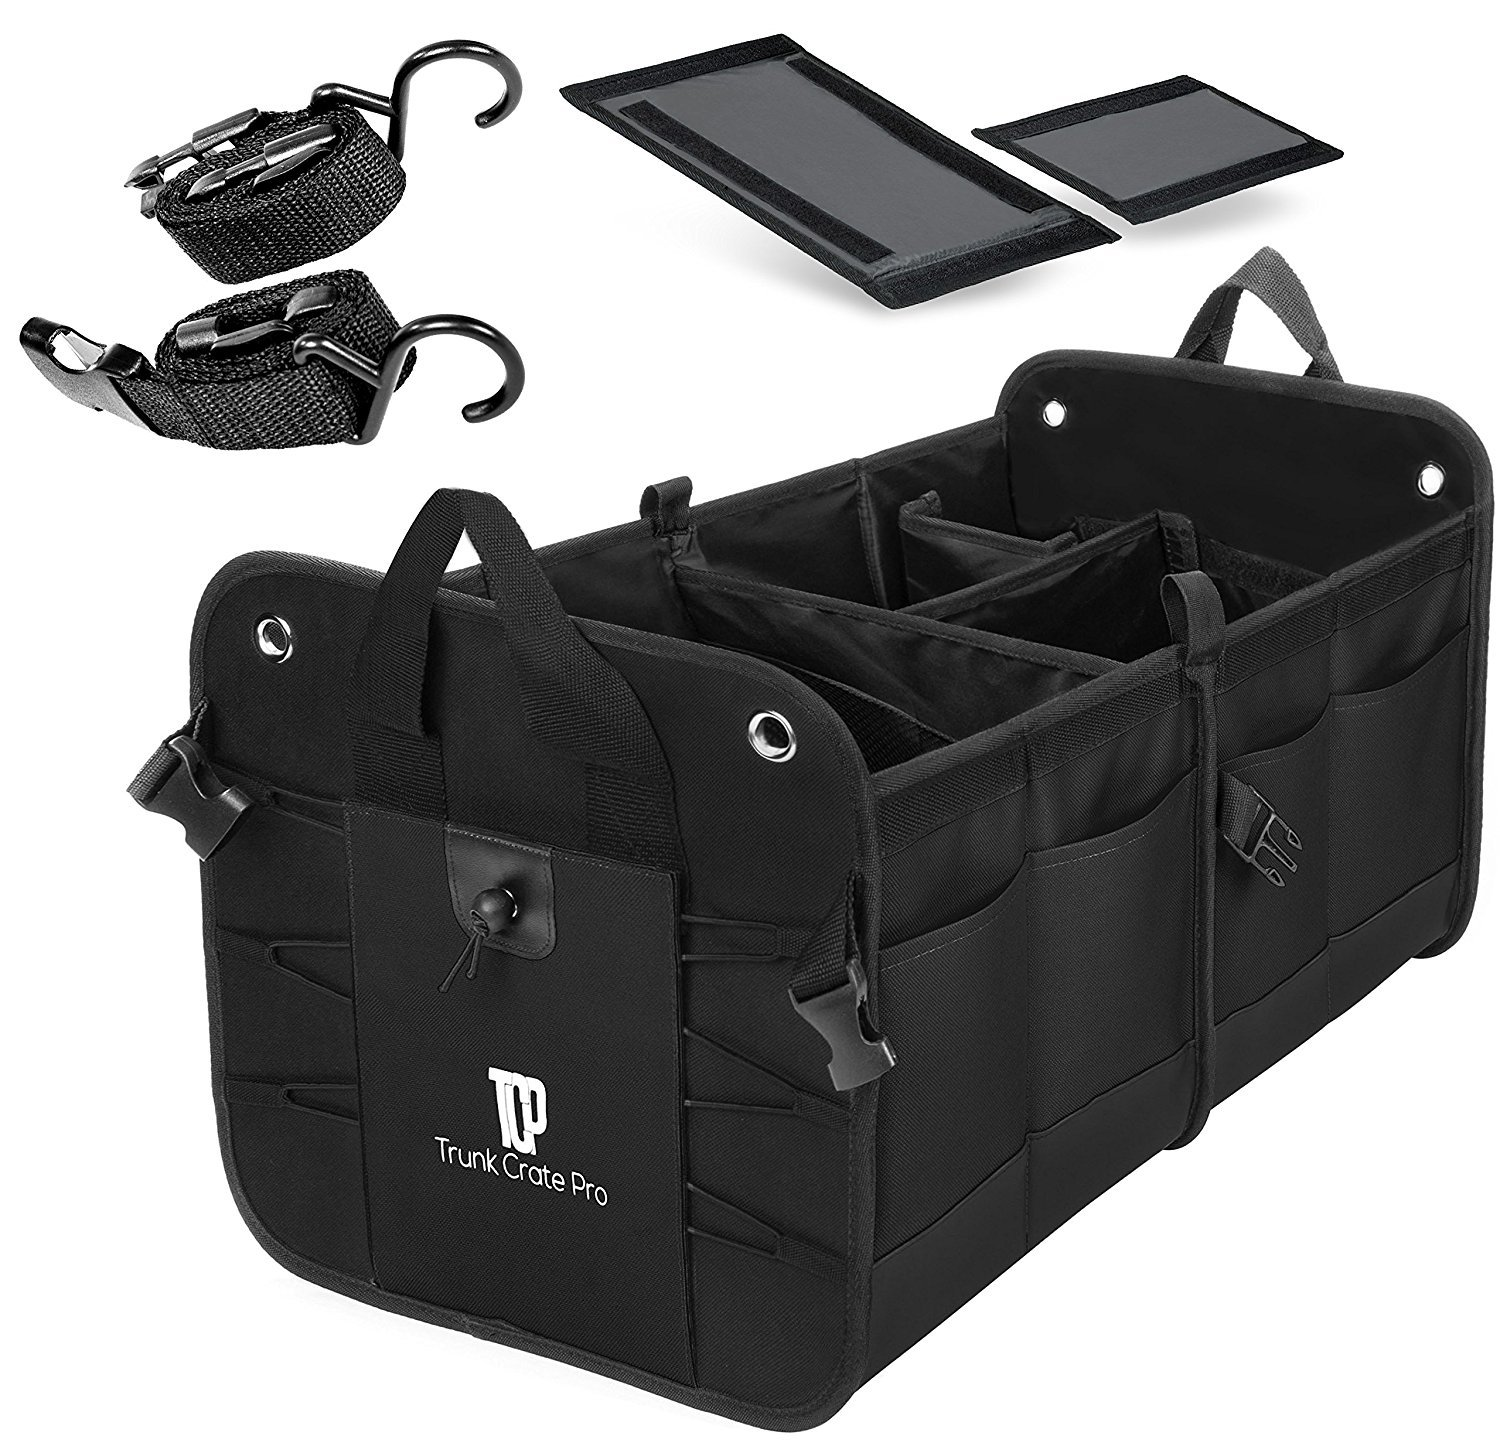 1.	Trunkcratepro Collapsible Trunk Organizer